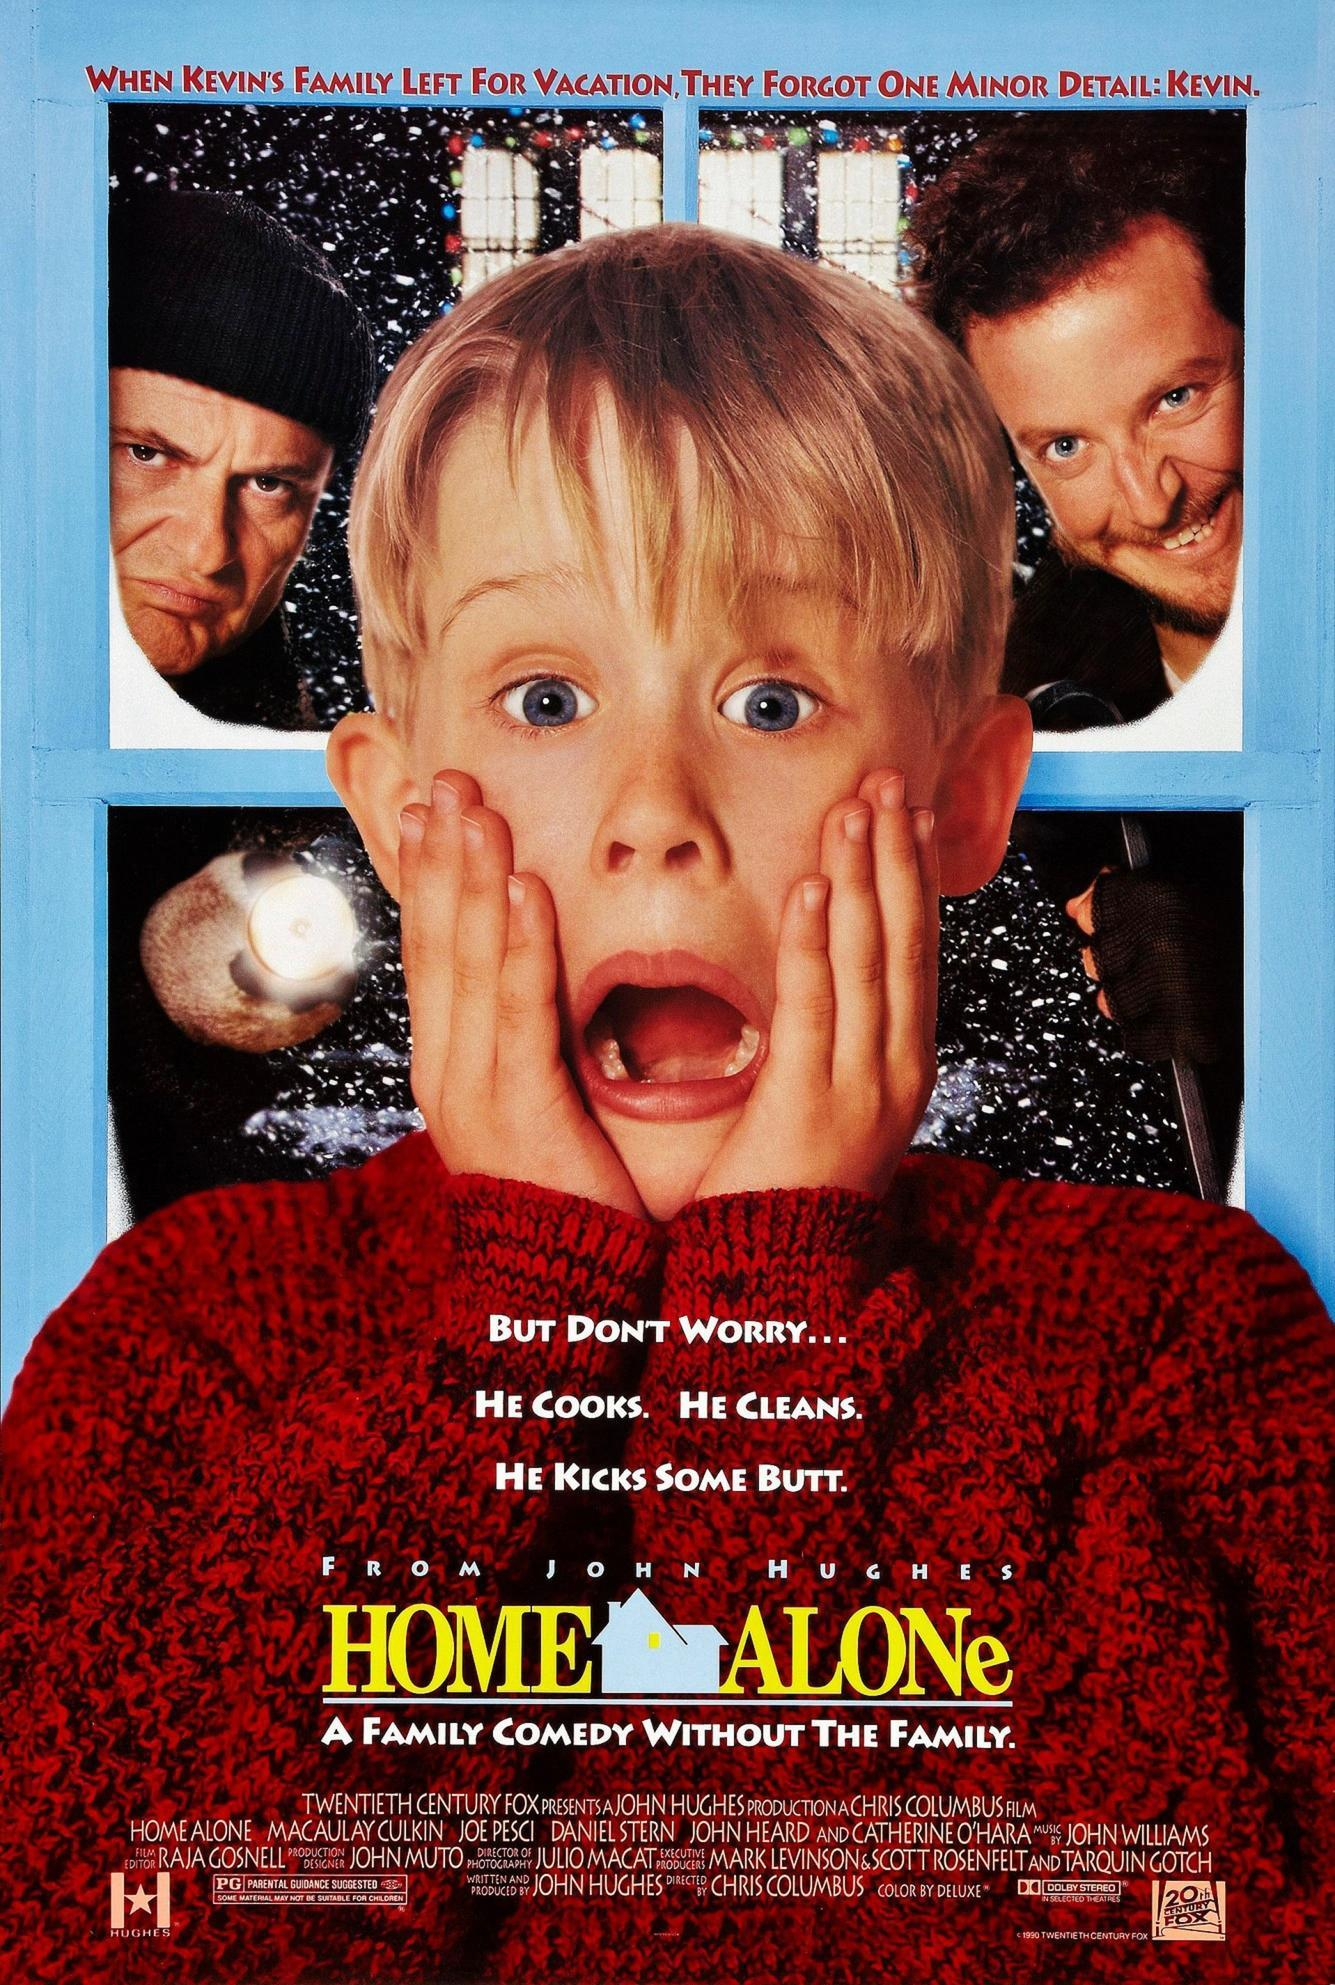 Christmas fans can celebrate early with Home Alone film screening